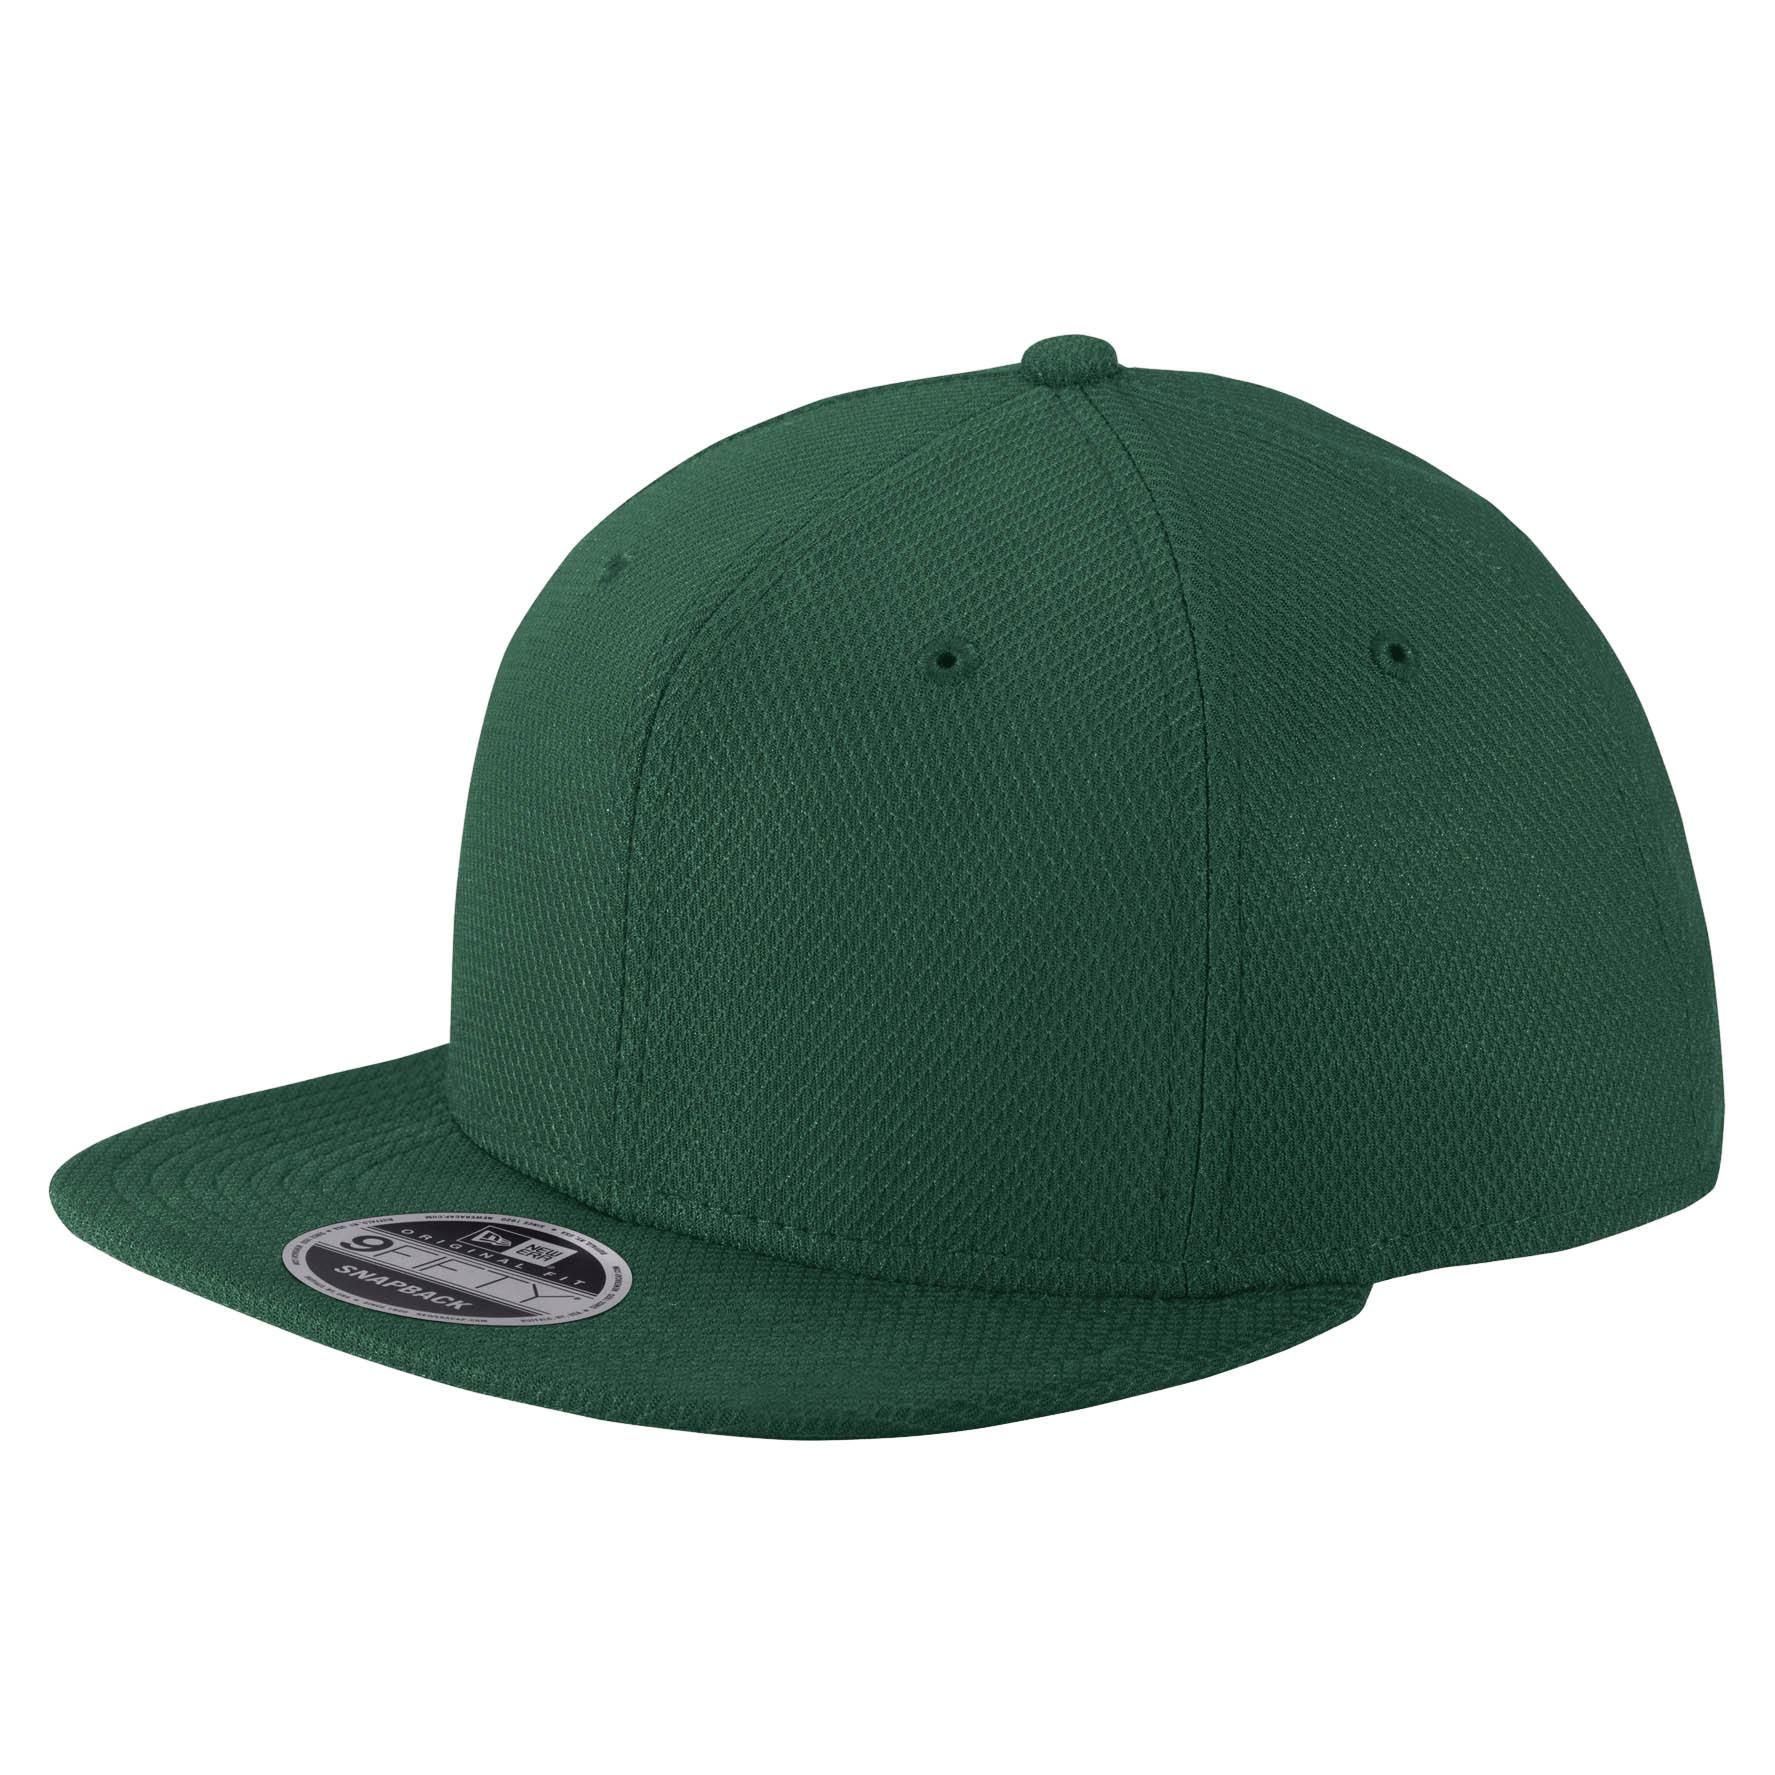 New Era NE404 Original Fit Diamond Era Flat Bill Snapback Cap - Dark Green d72f992d2170